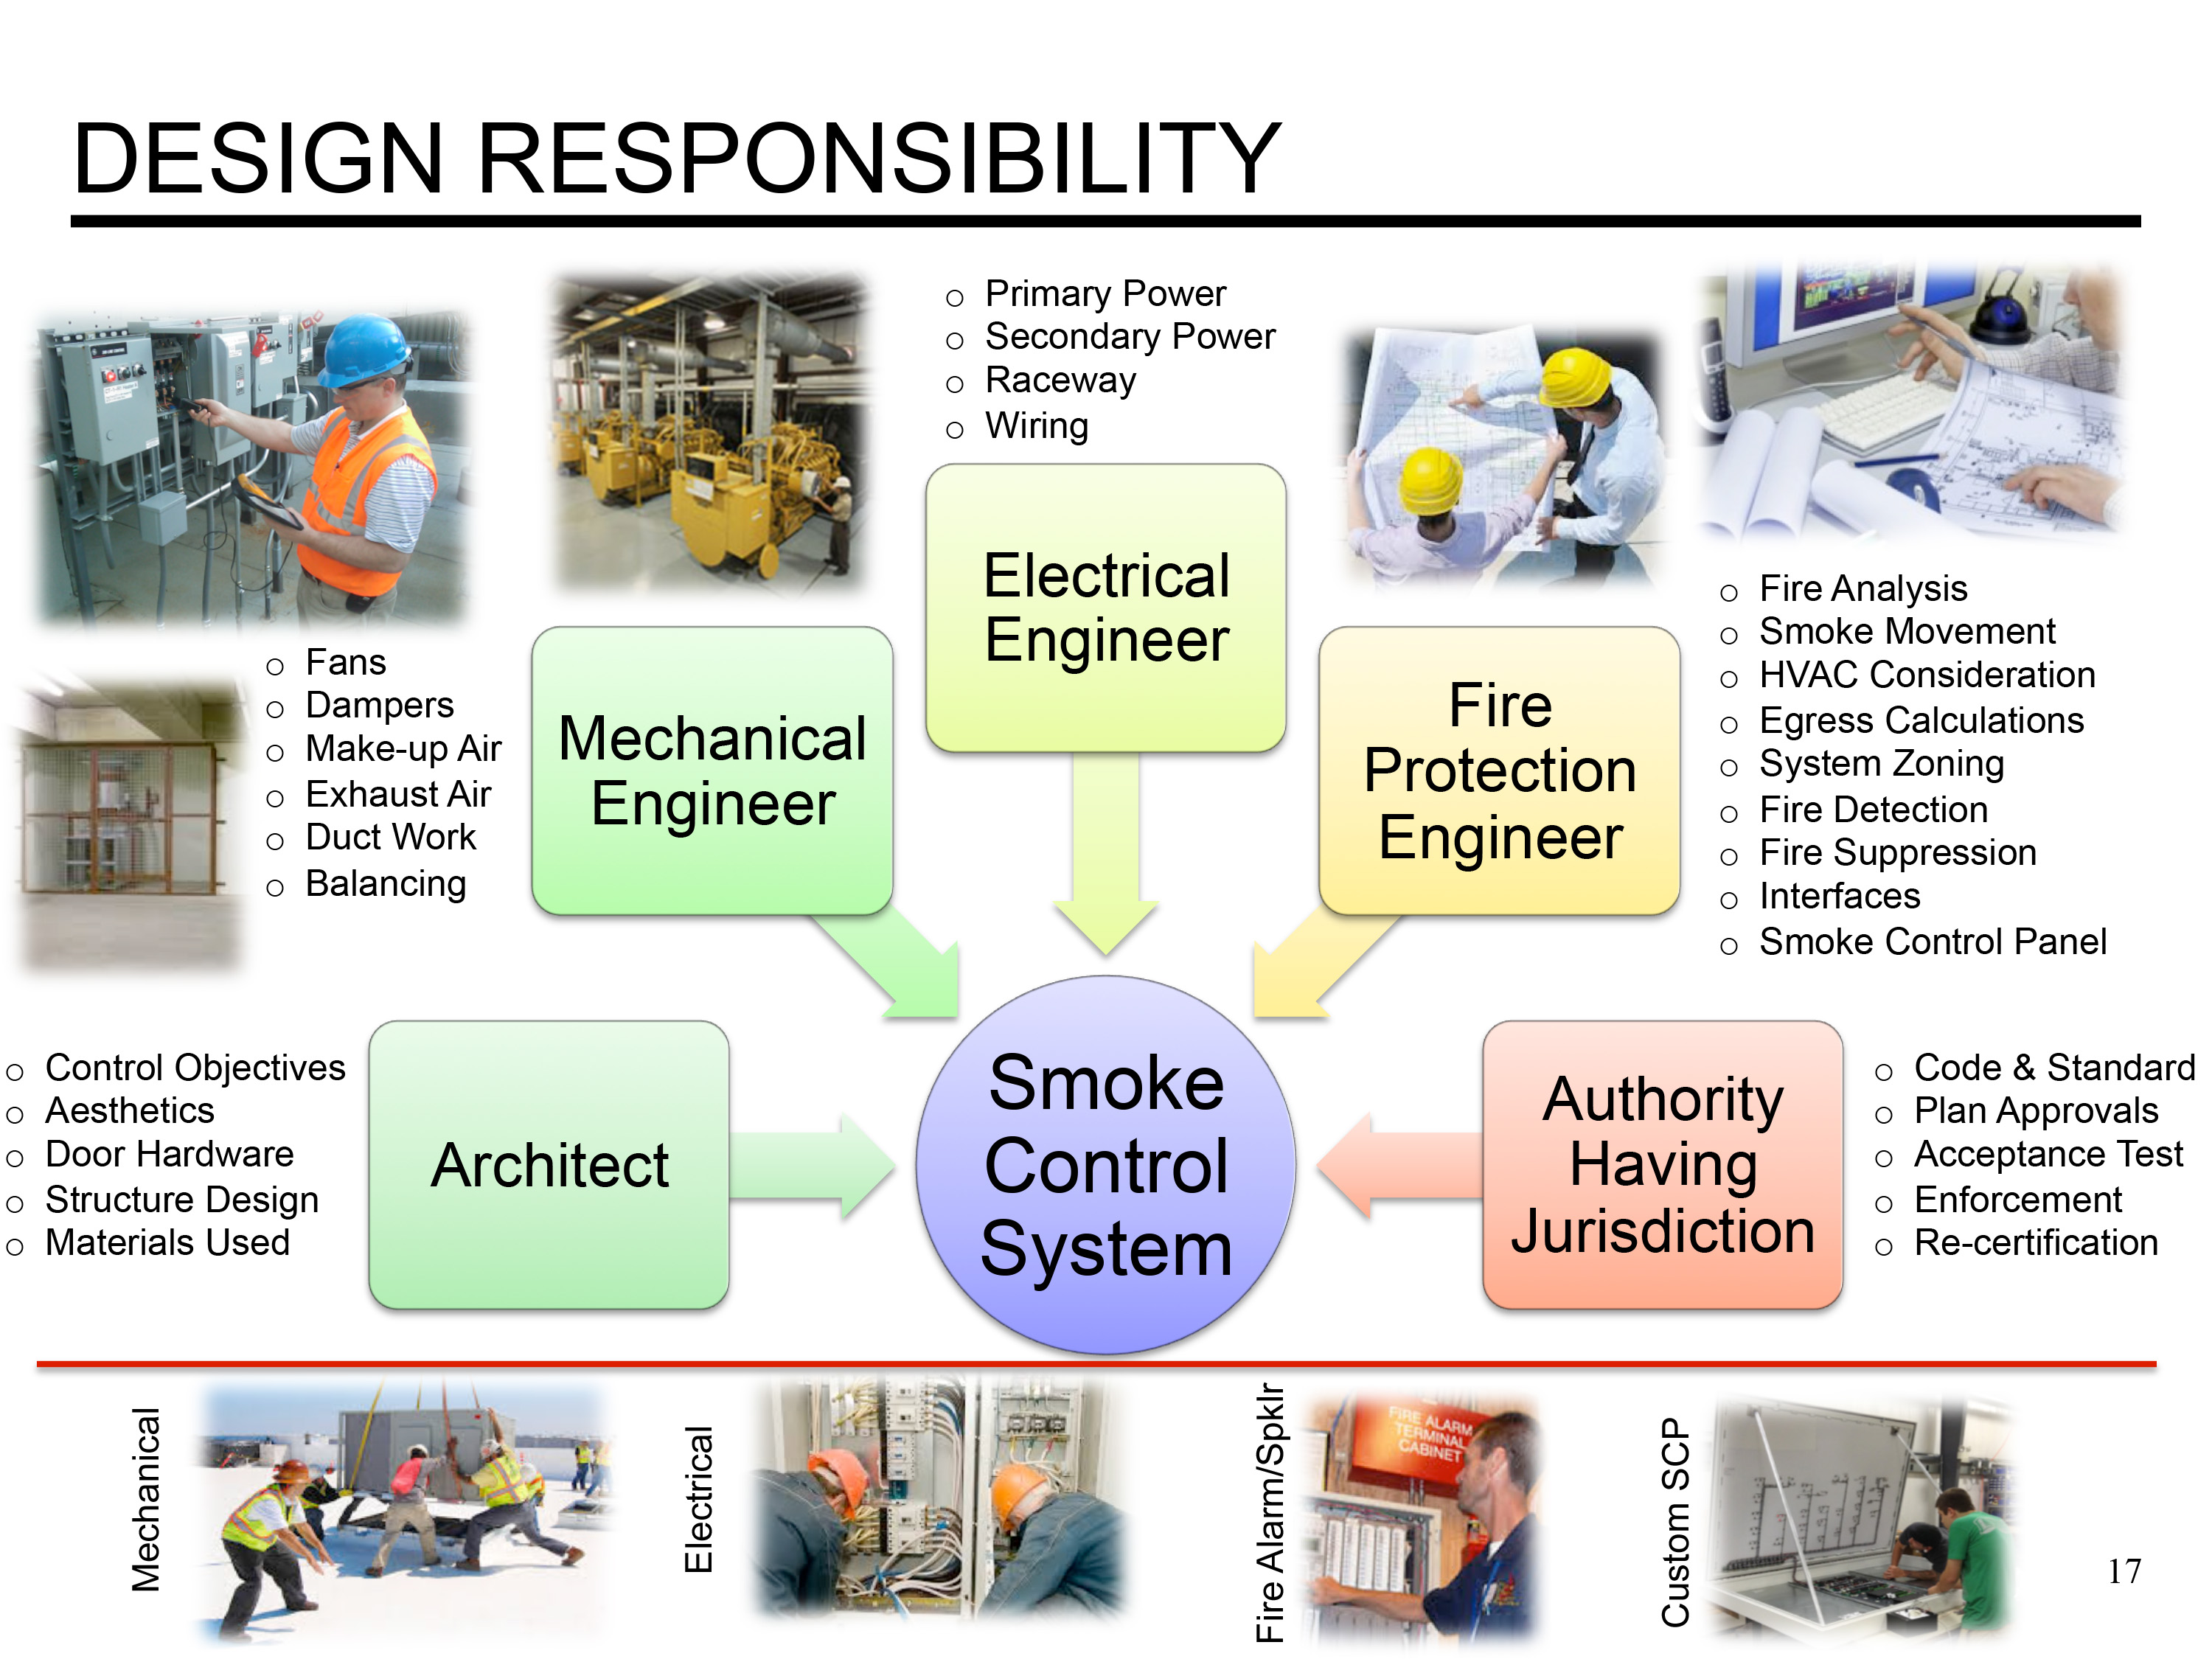 Smoke Control Vs Smoke Management An Overview Life Safety Blog Space Age Electronics Blog